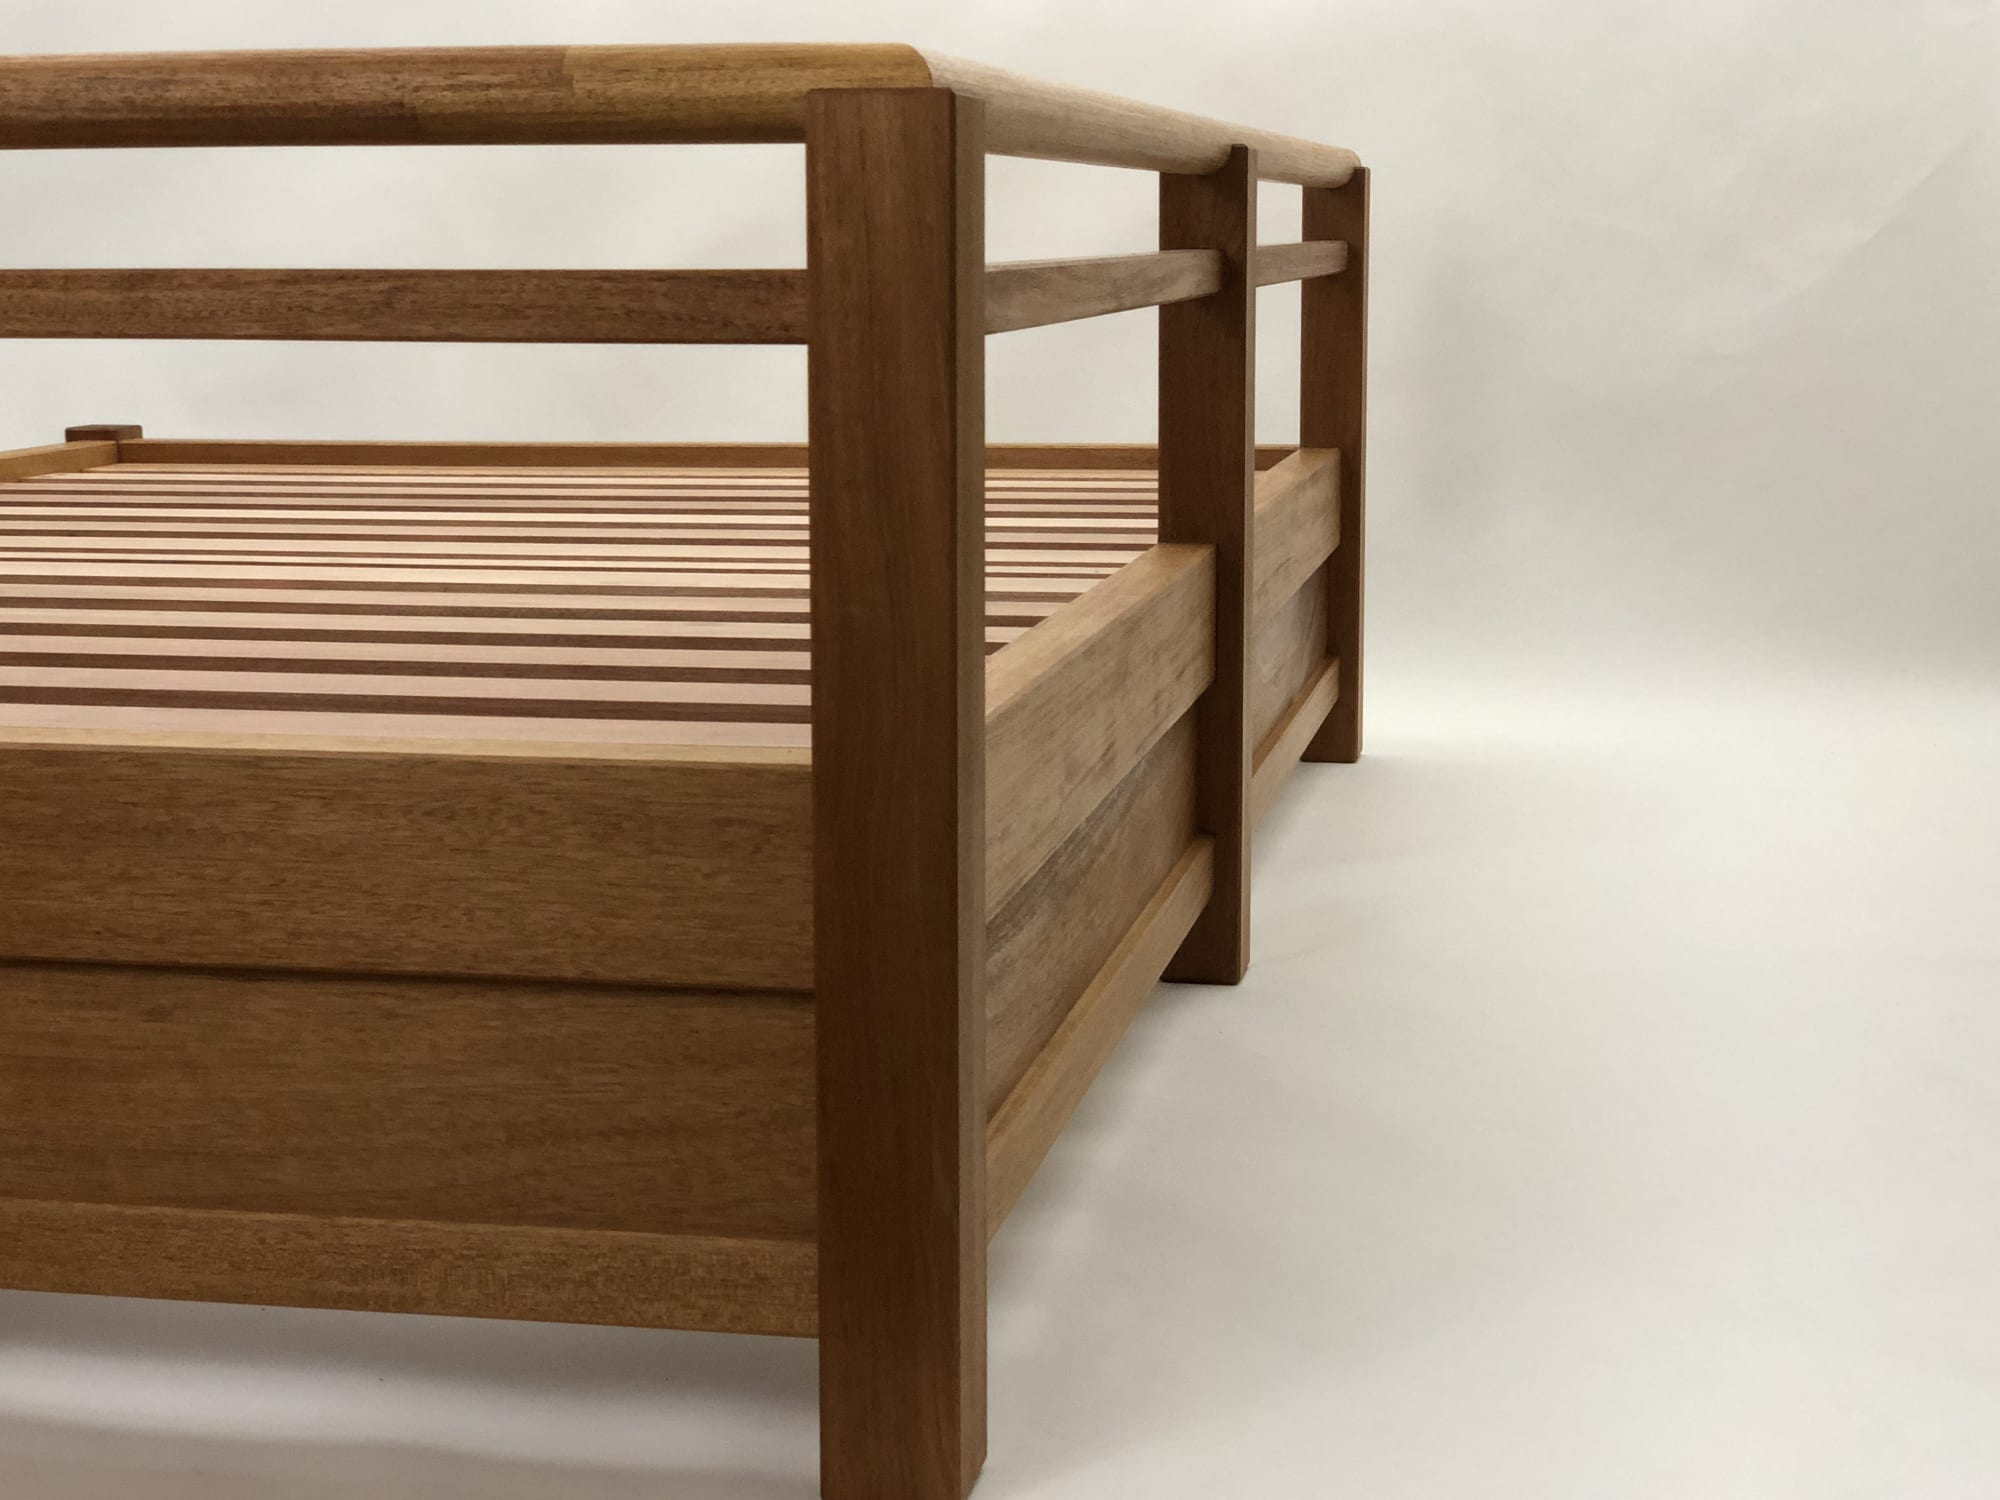 Beds & Accessories by Brian Holcombe Woodworker seen at Pennington, NJ, Pennington - Naiku